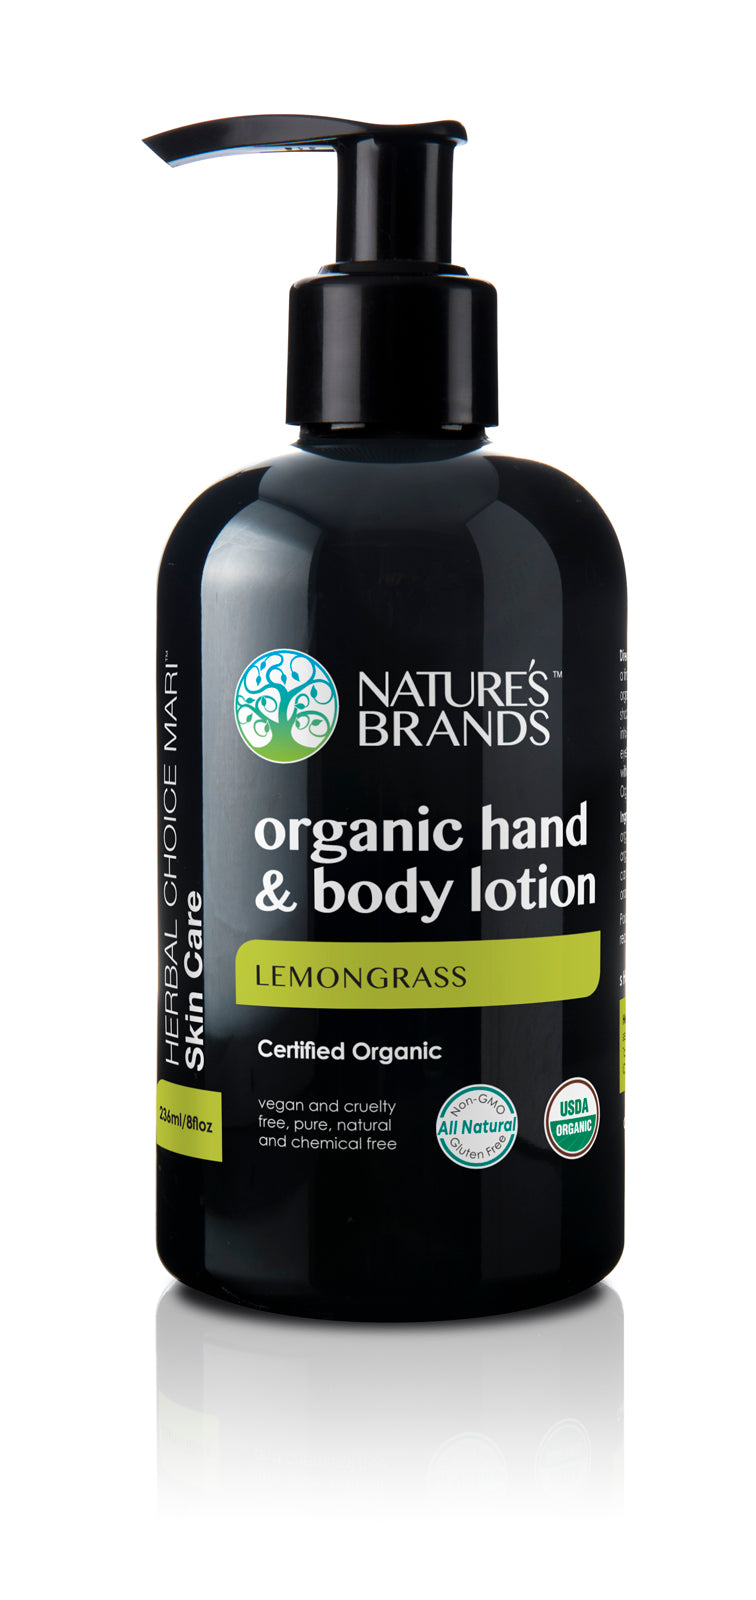 Herbal Choice Mari Organic Hand & Body Lotion, Lemongrass - Herbal Choice Mari Organic Hand & Body Lotion, Lemongrass - Herbal Choice Mari Organic Hand & Body Lotion, Lemongrass